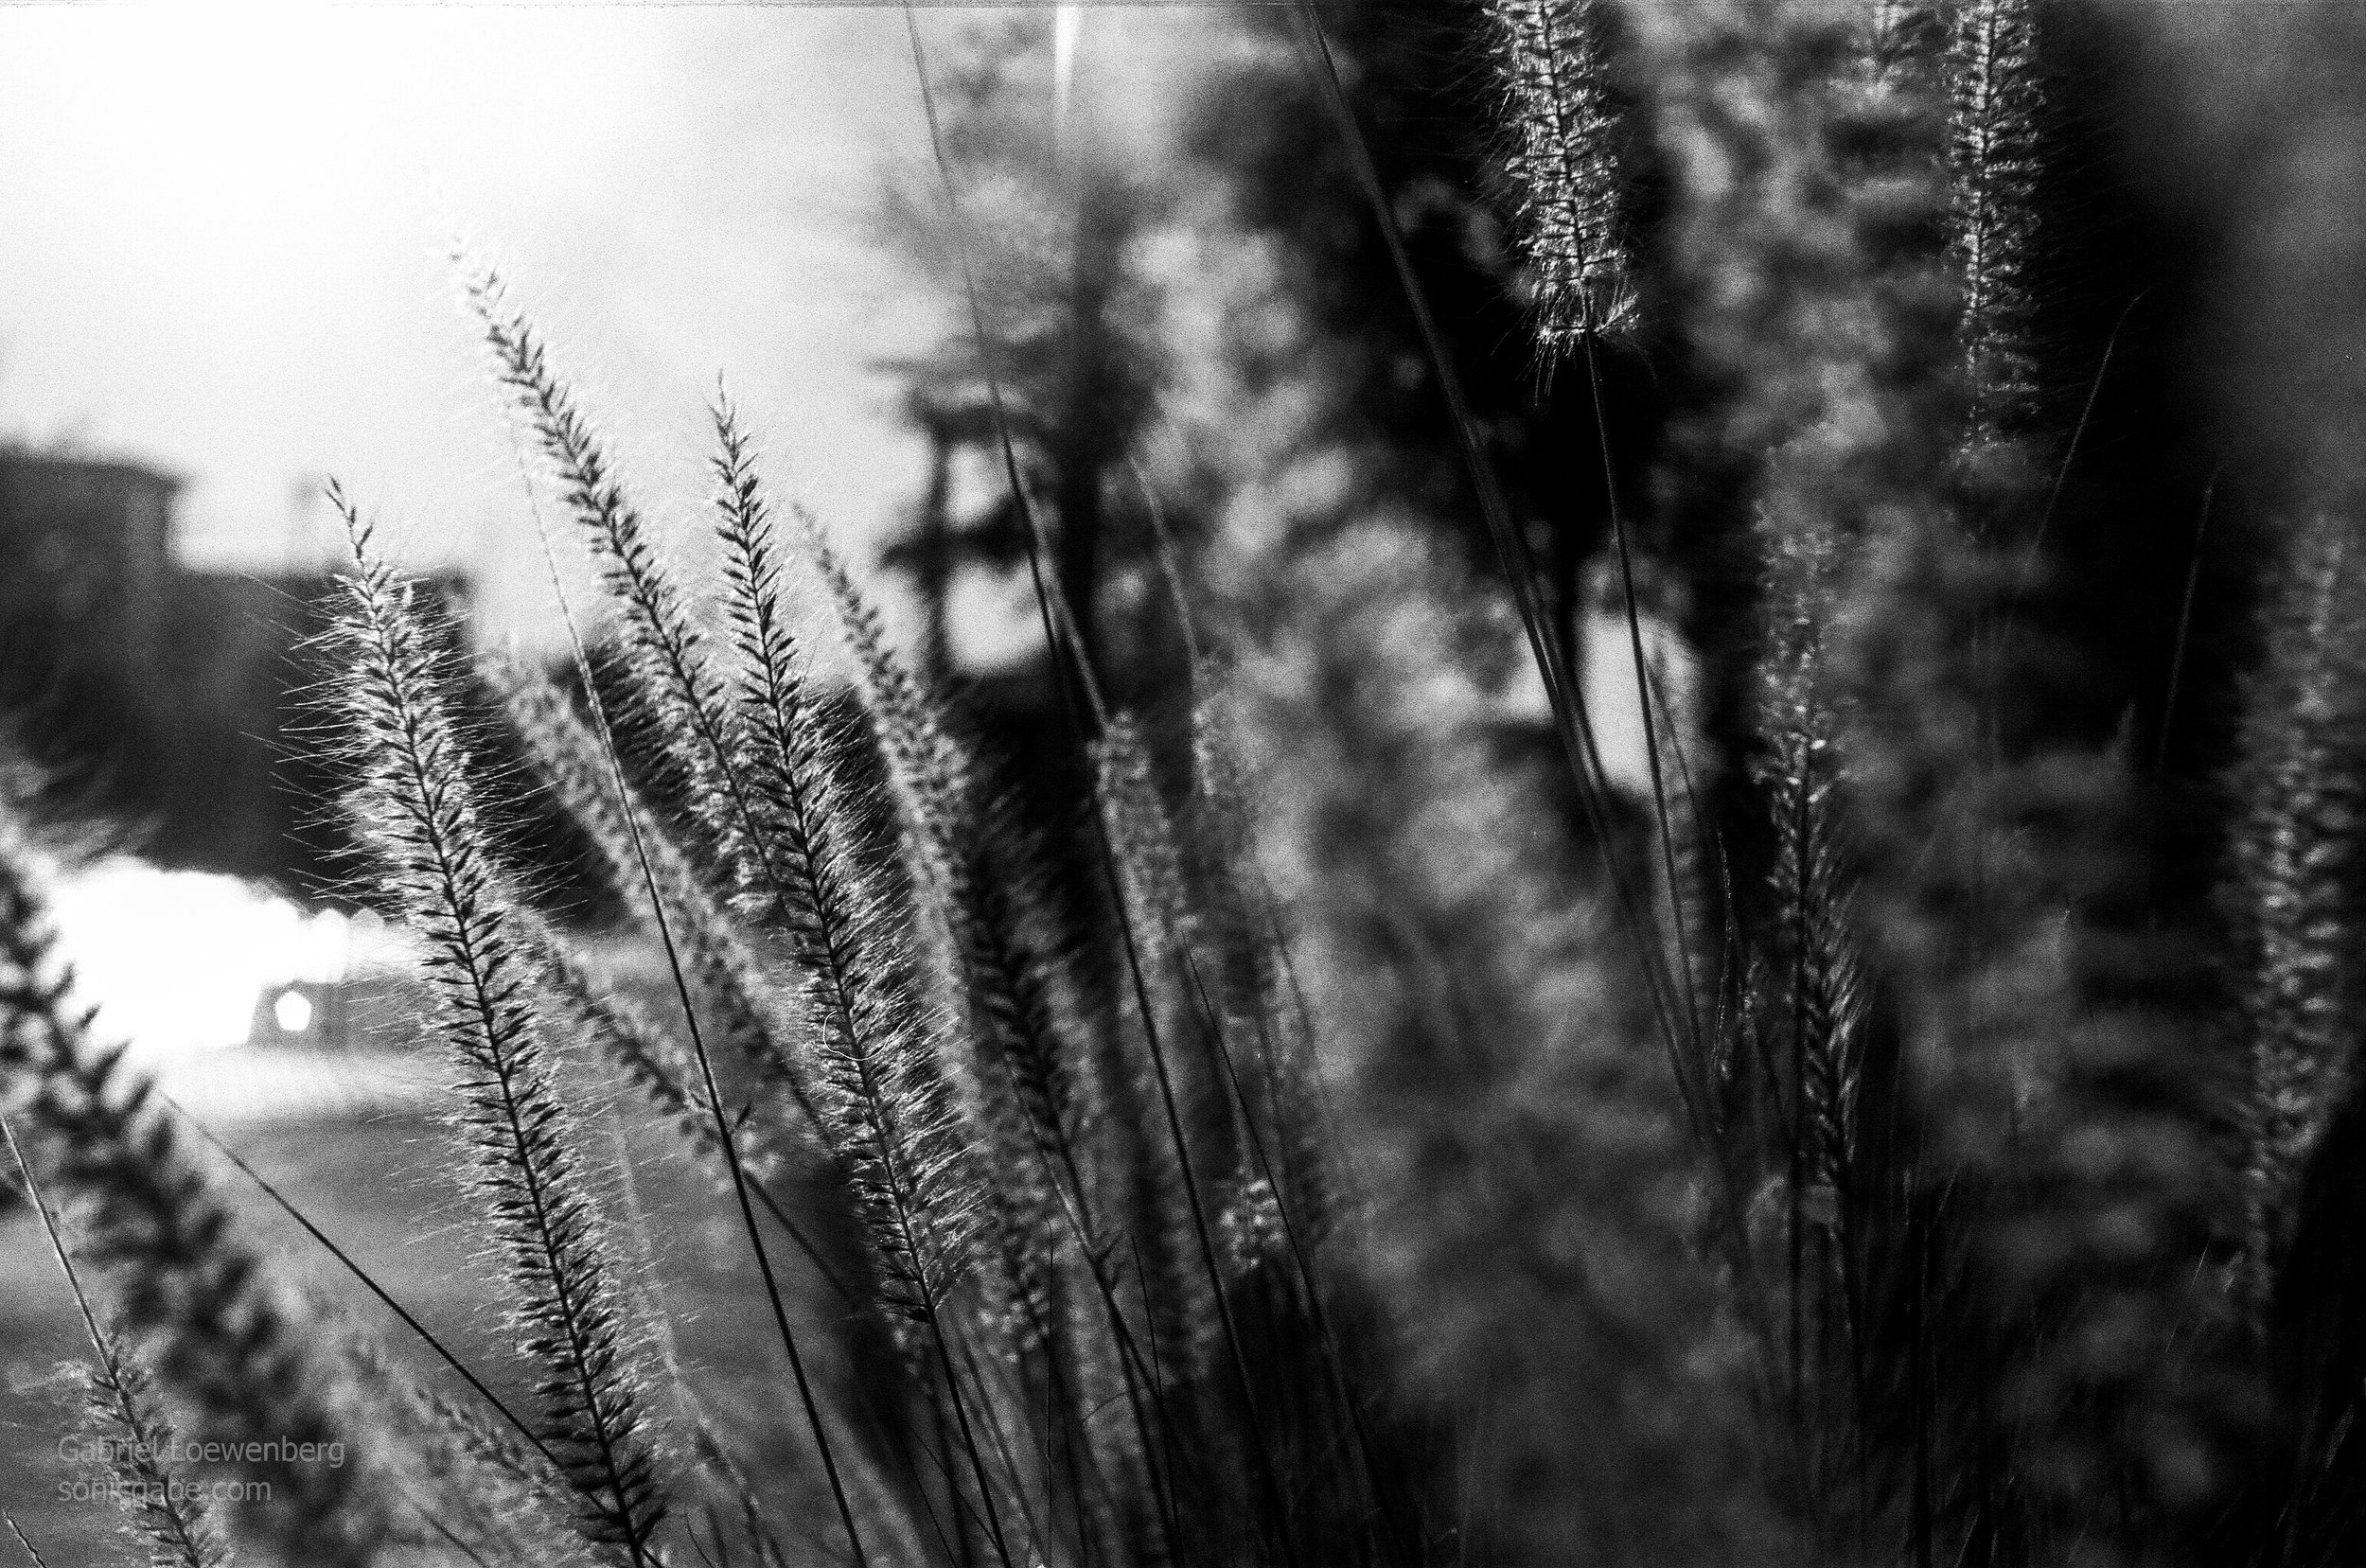 Shot with a 1951/52 Exa Version 1 on Fuji Neopan 100 Acros